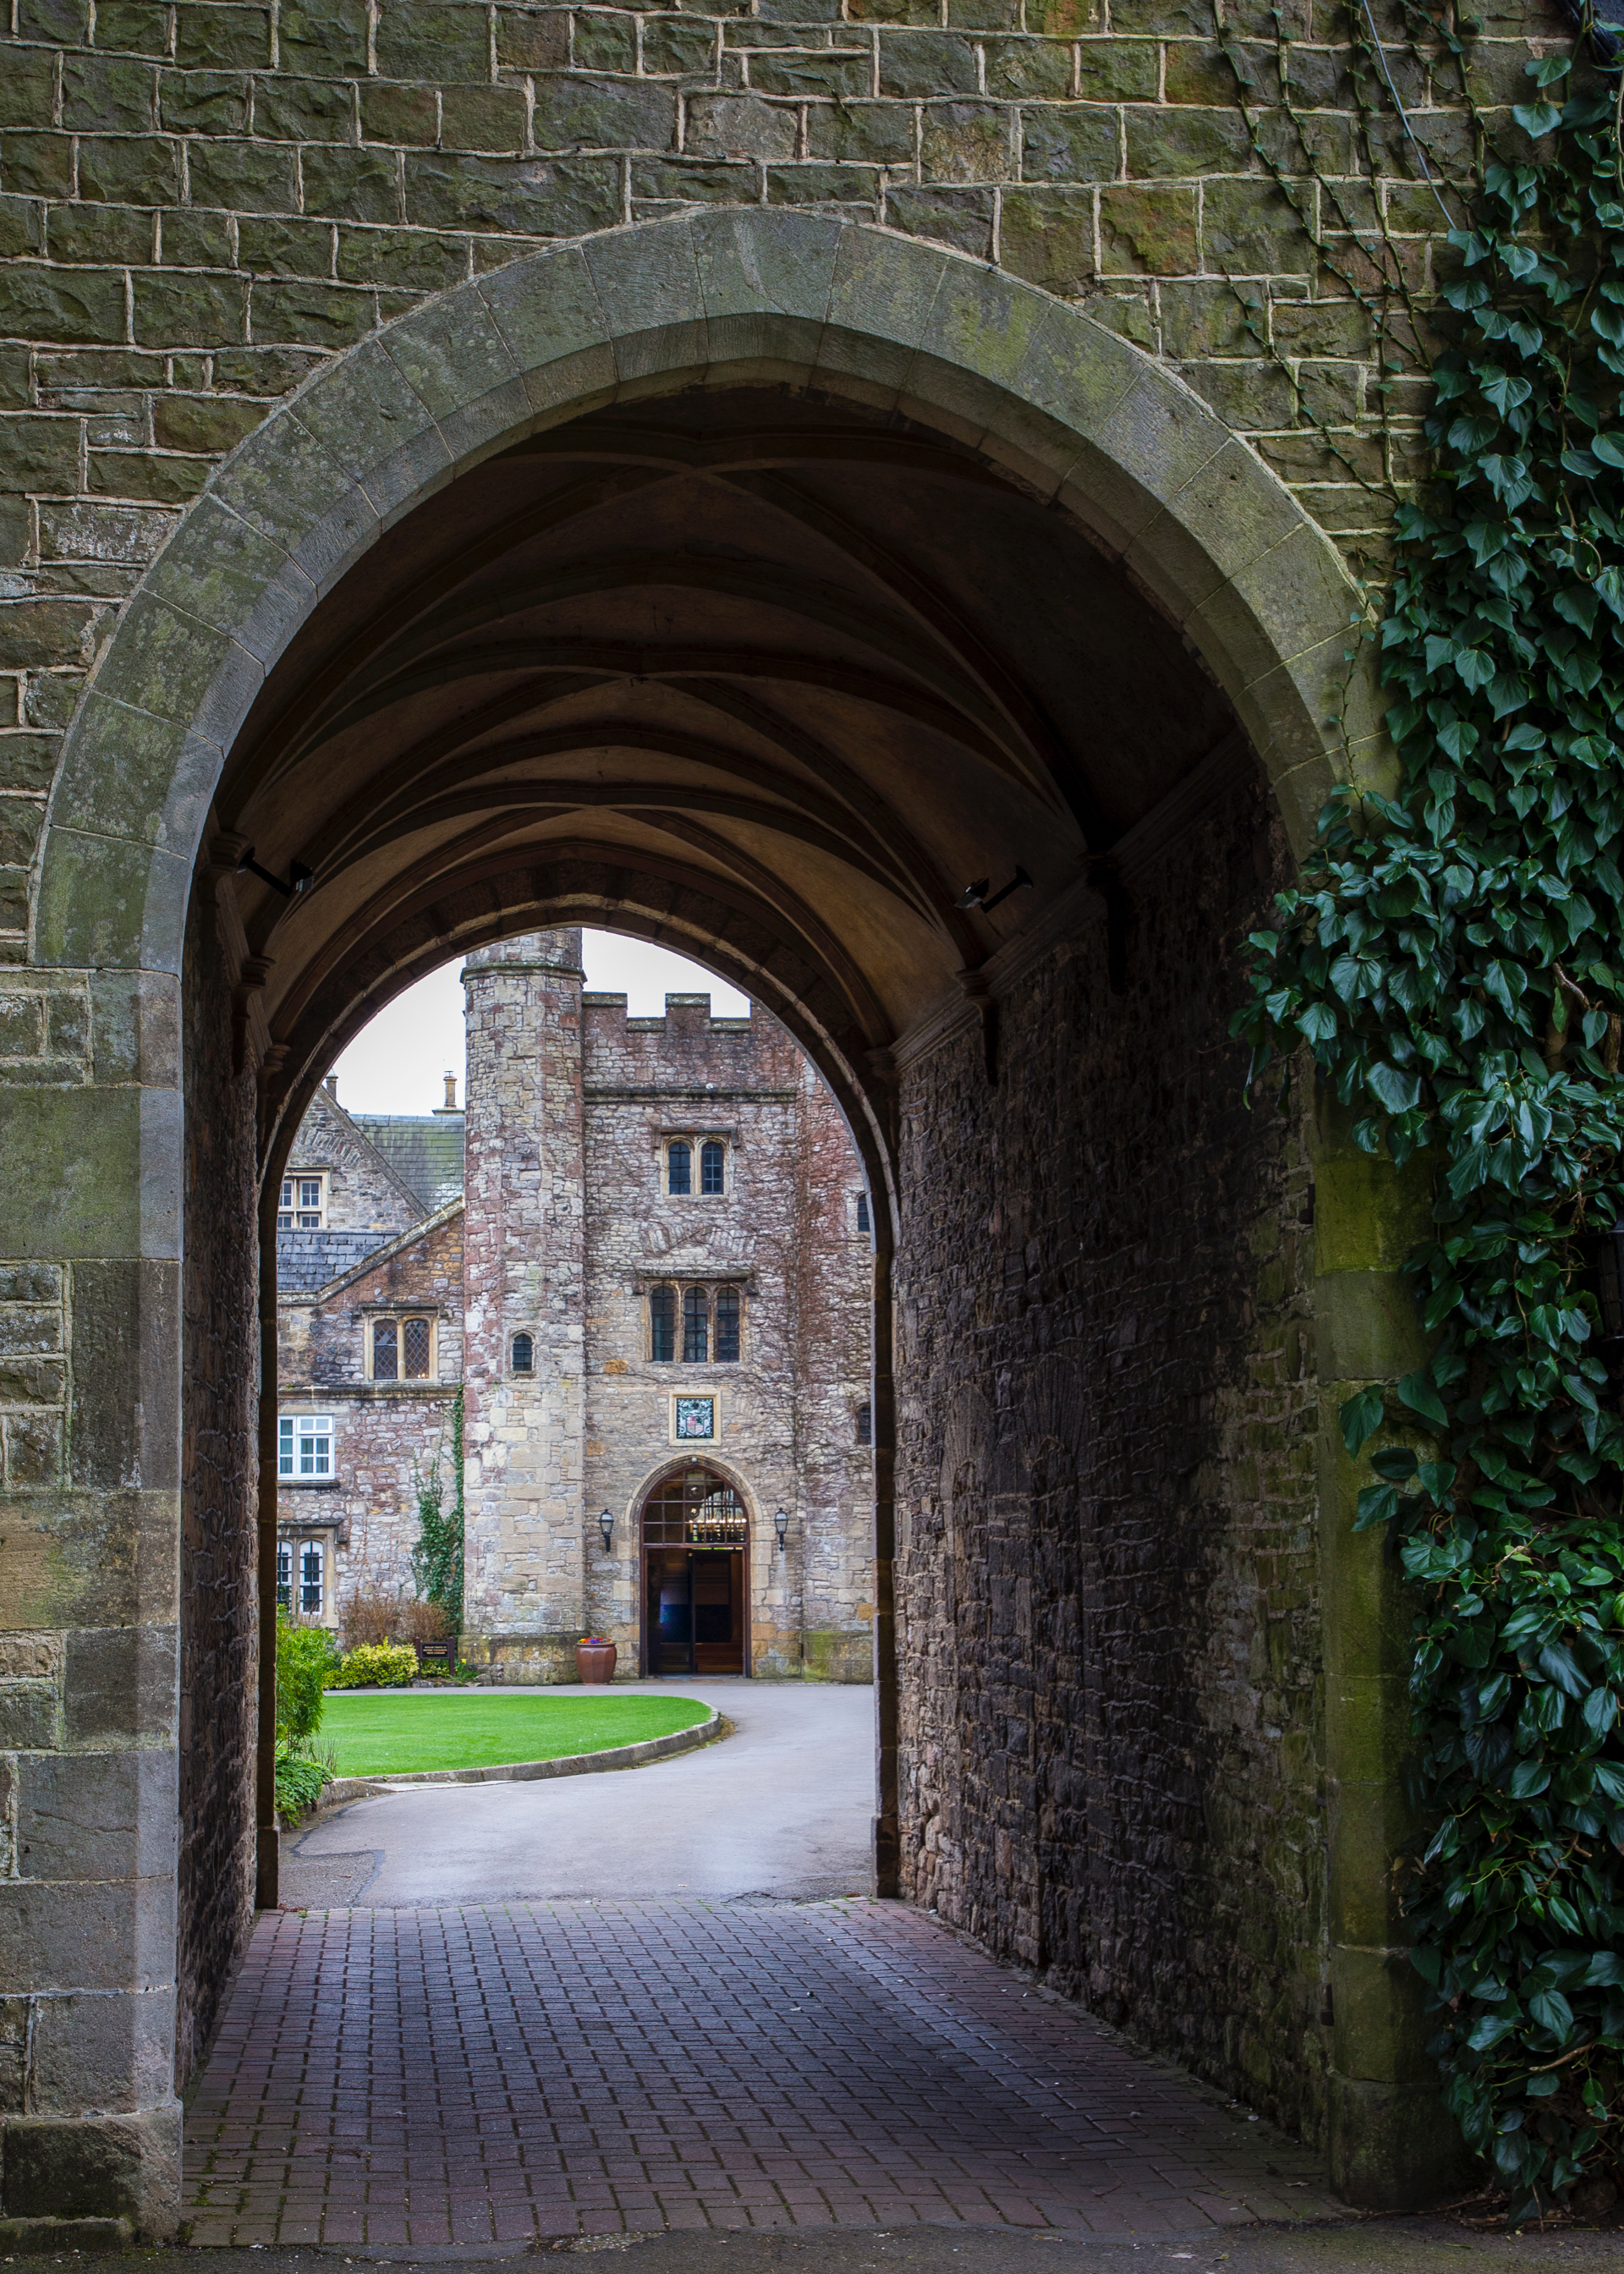 A view of the hotel through the original gatehouse.